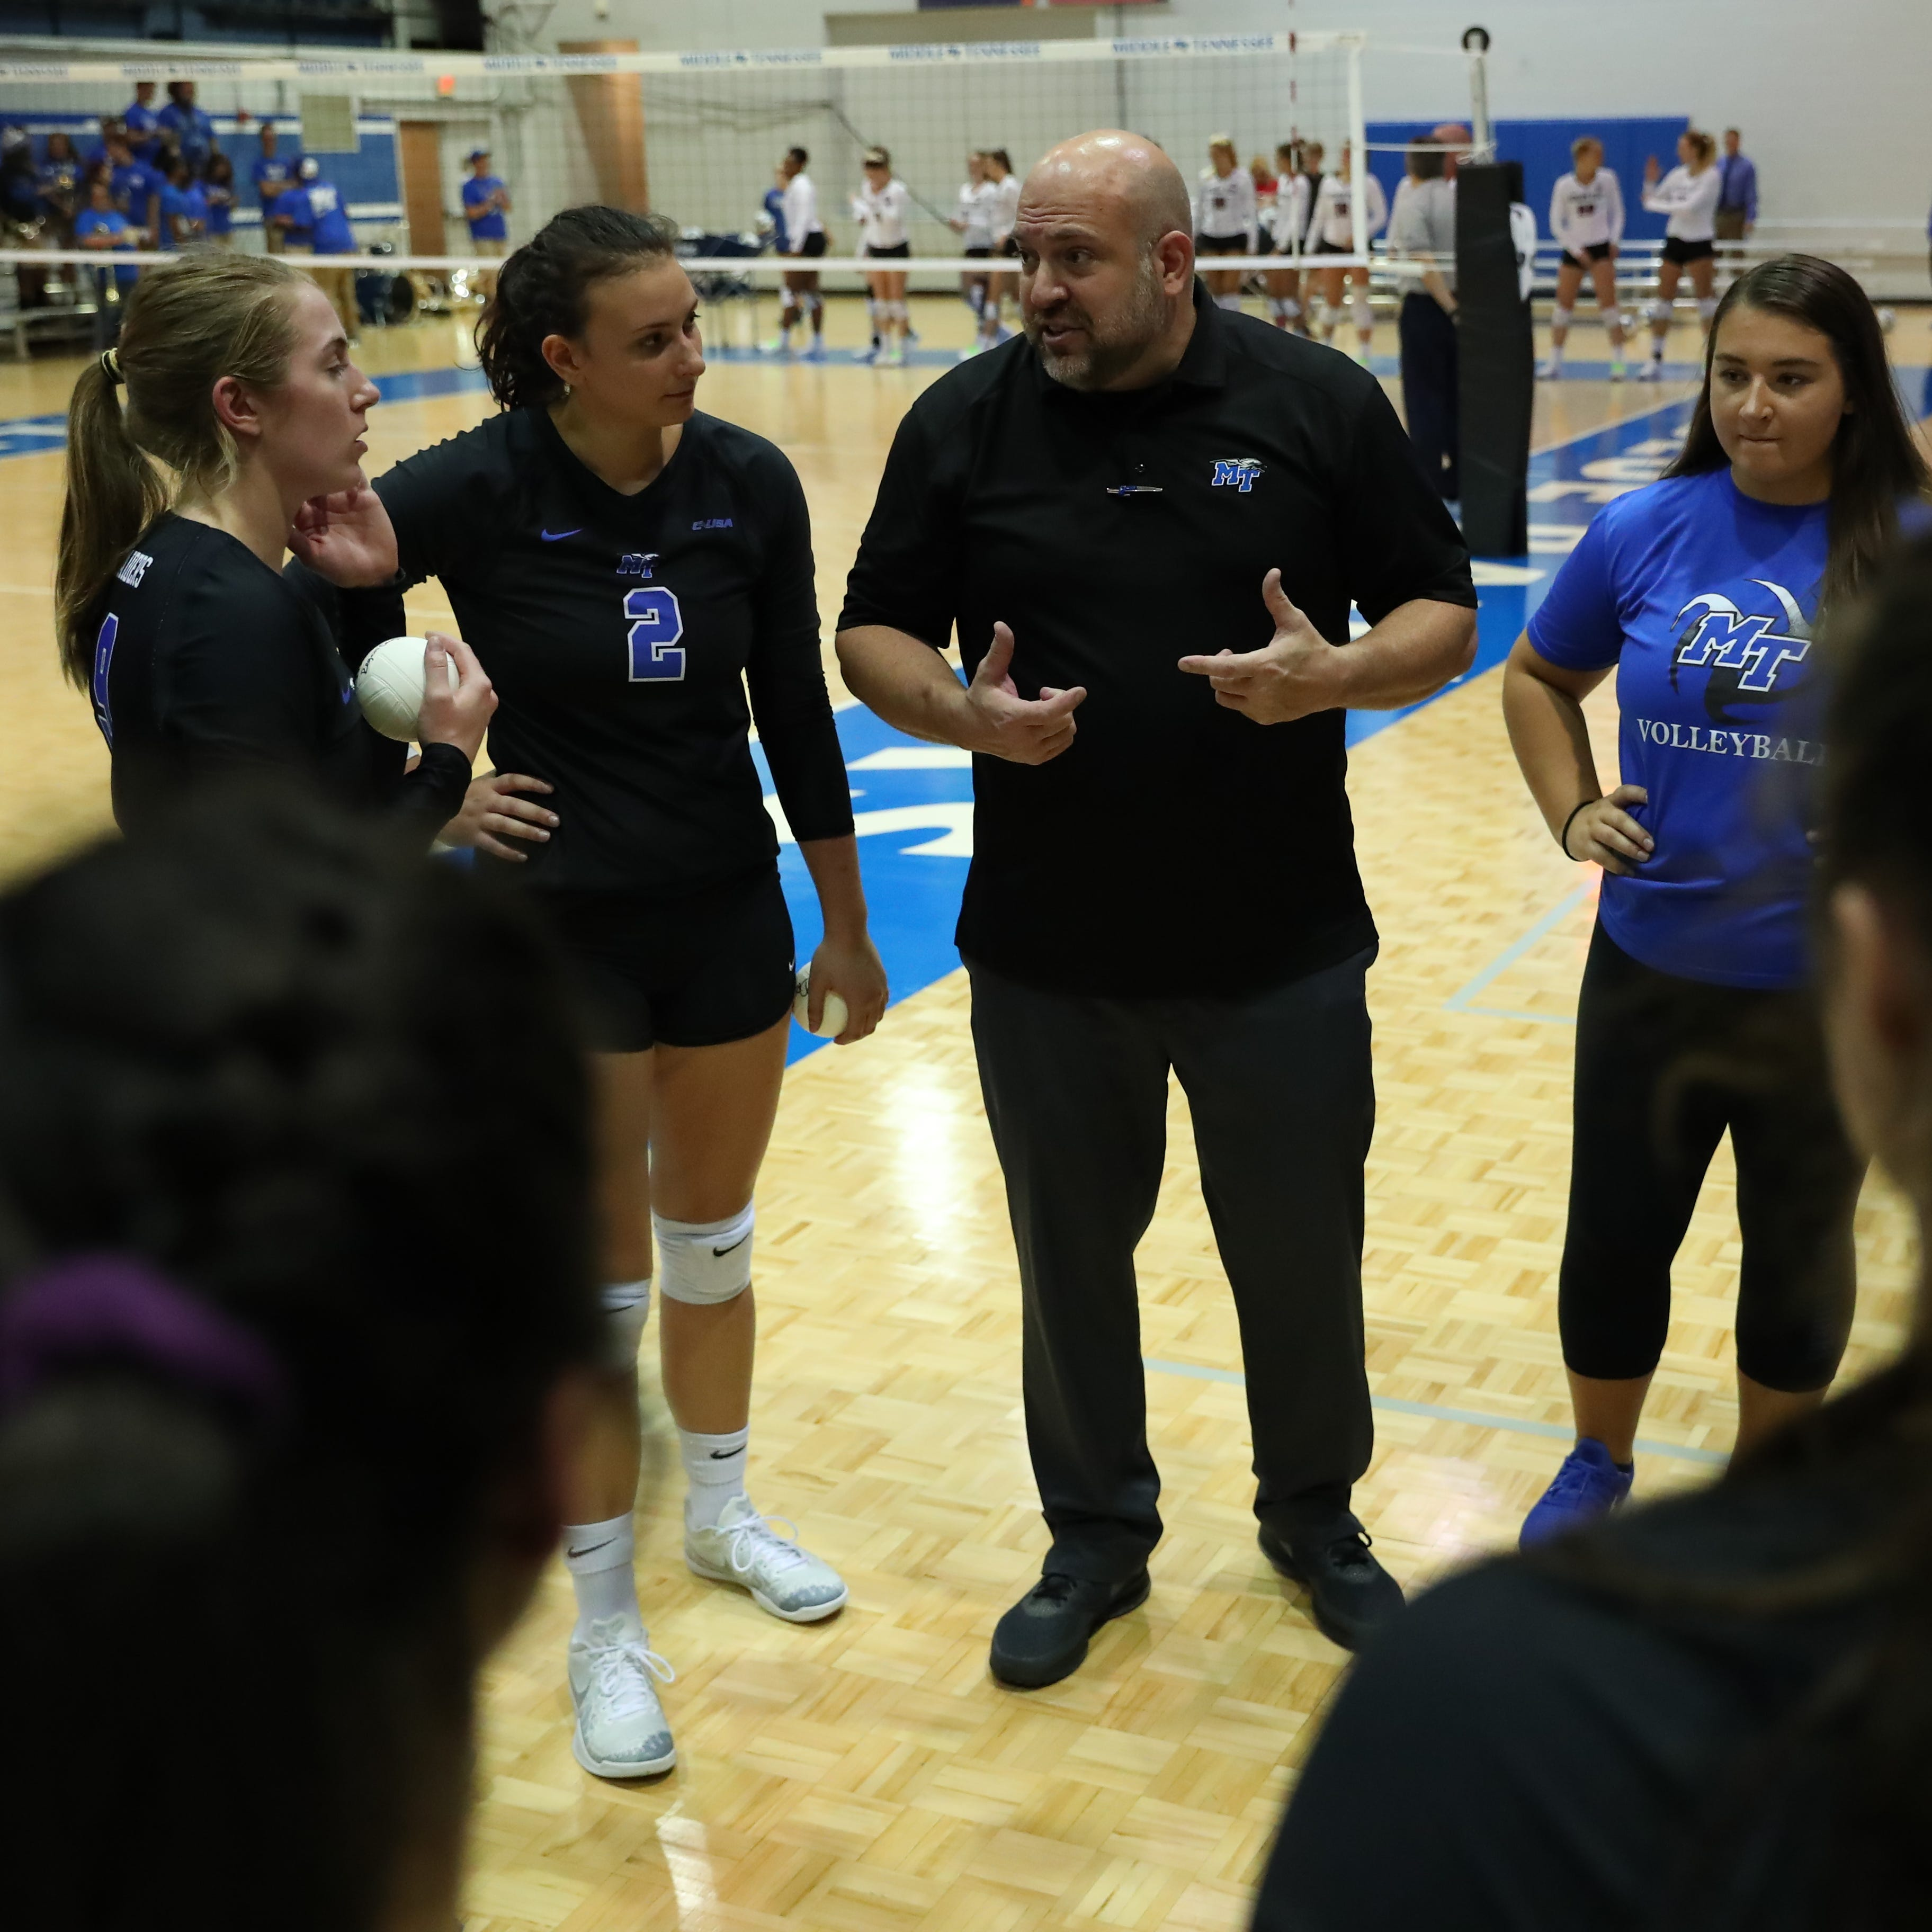 MTSU volleyball coach Chuck Crawford suspended after claims of player mistreatment